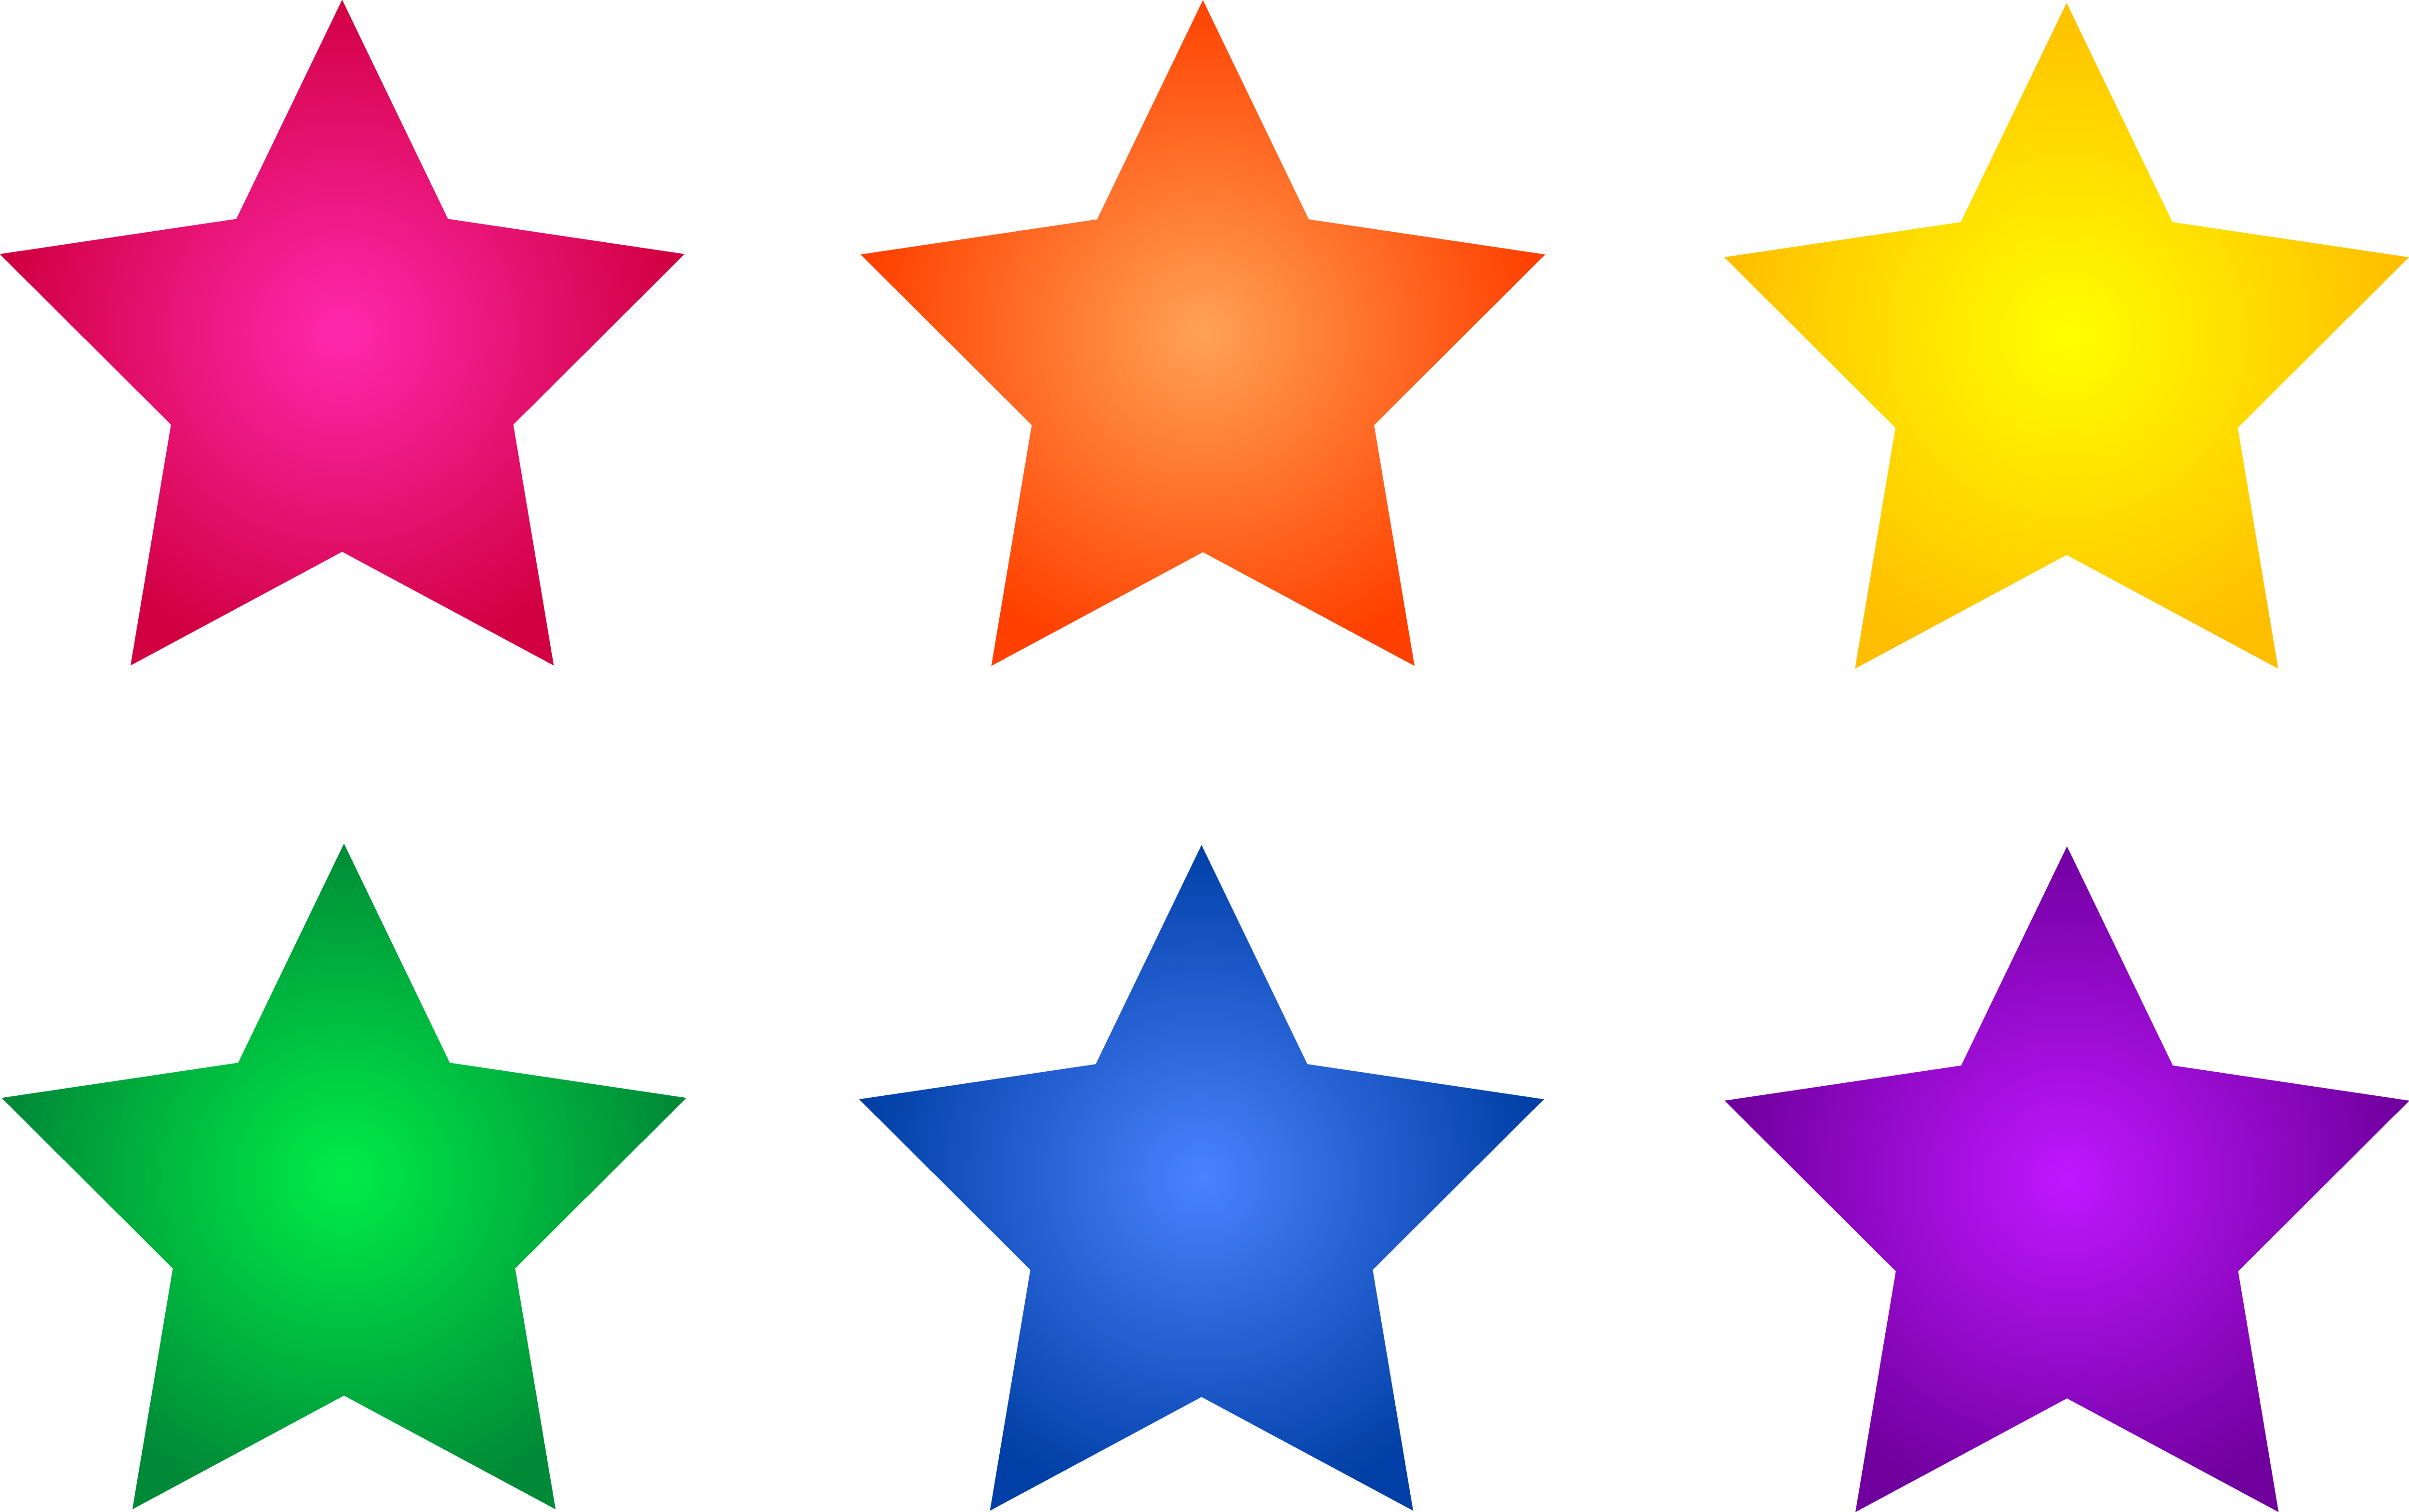 Pin of stars by. Congratulations clipart small gold star